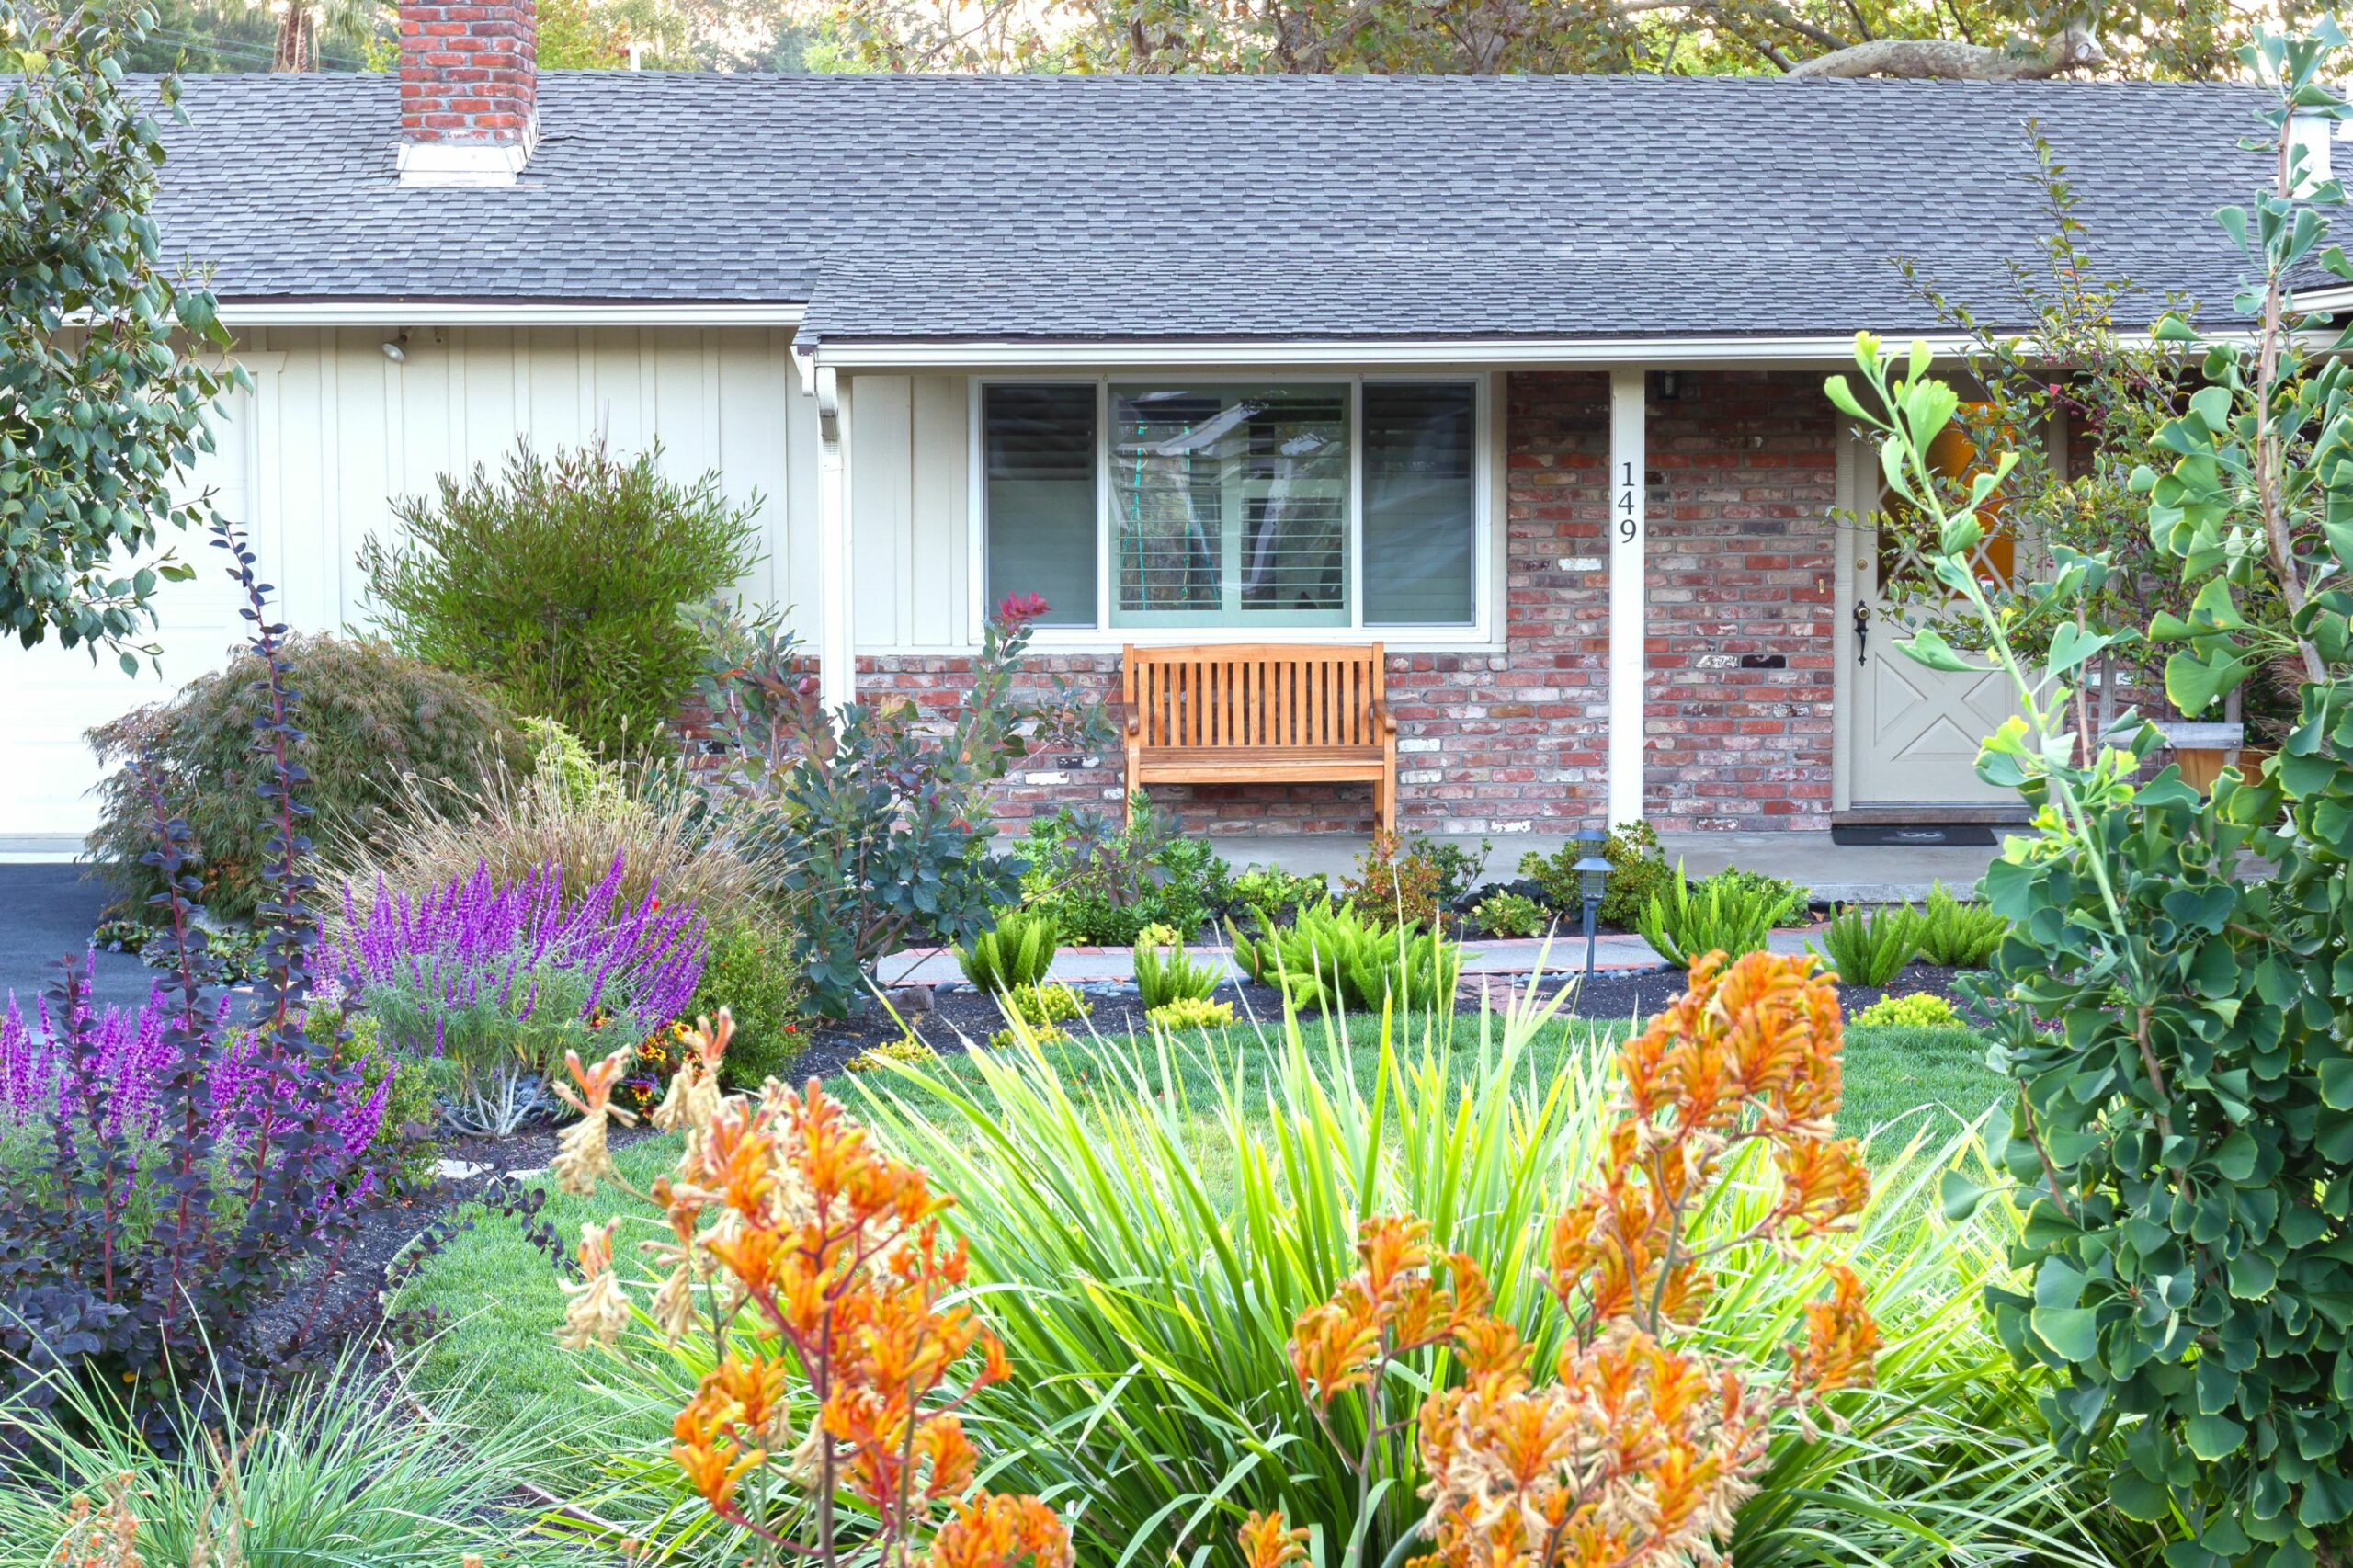 Front Yard Ideas: Simple DIY Front Yard Landscaping Ideas - garden ideas for front of house